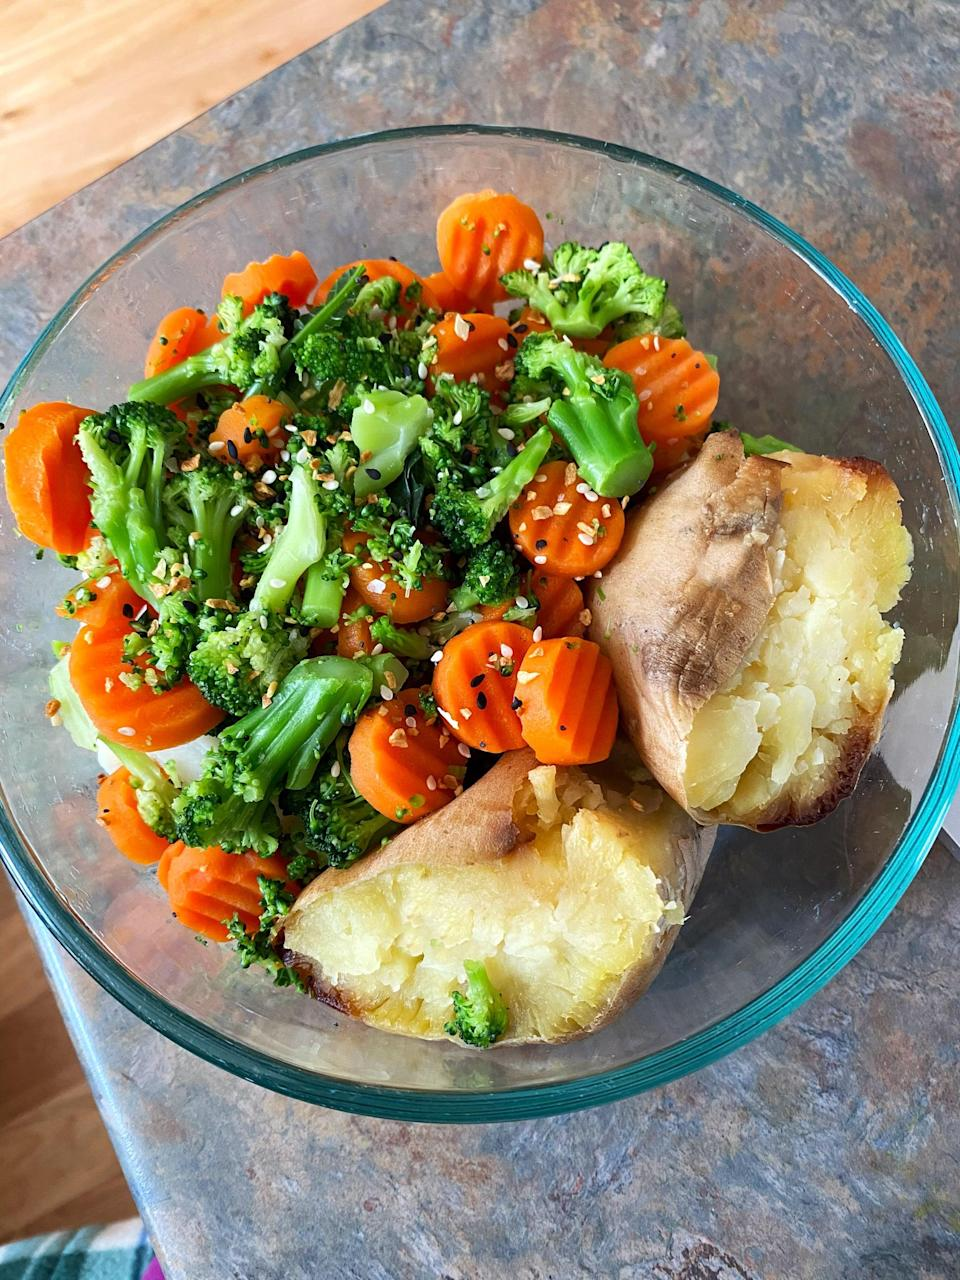 <p>This is my go-to and absolute favorite lunch (and sometimes breakfast!). I batch prep a bunch of Japanese sweet potatoes (the one with the darker maroon skin and white flesh) so I have them for three or four days. I love to pair them with steamed broccoli, cauliflower, and carrots with a sprinkling of Everything but the Bagel seasoning. It's so yummy! To make this even more satiating, I'd add some chickpeas or black beans on top.</p>